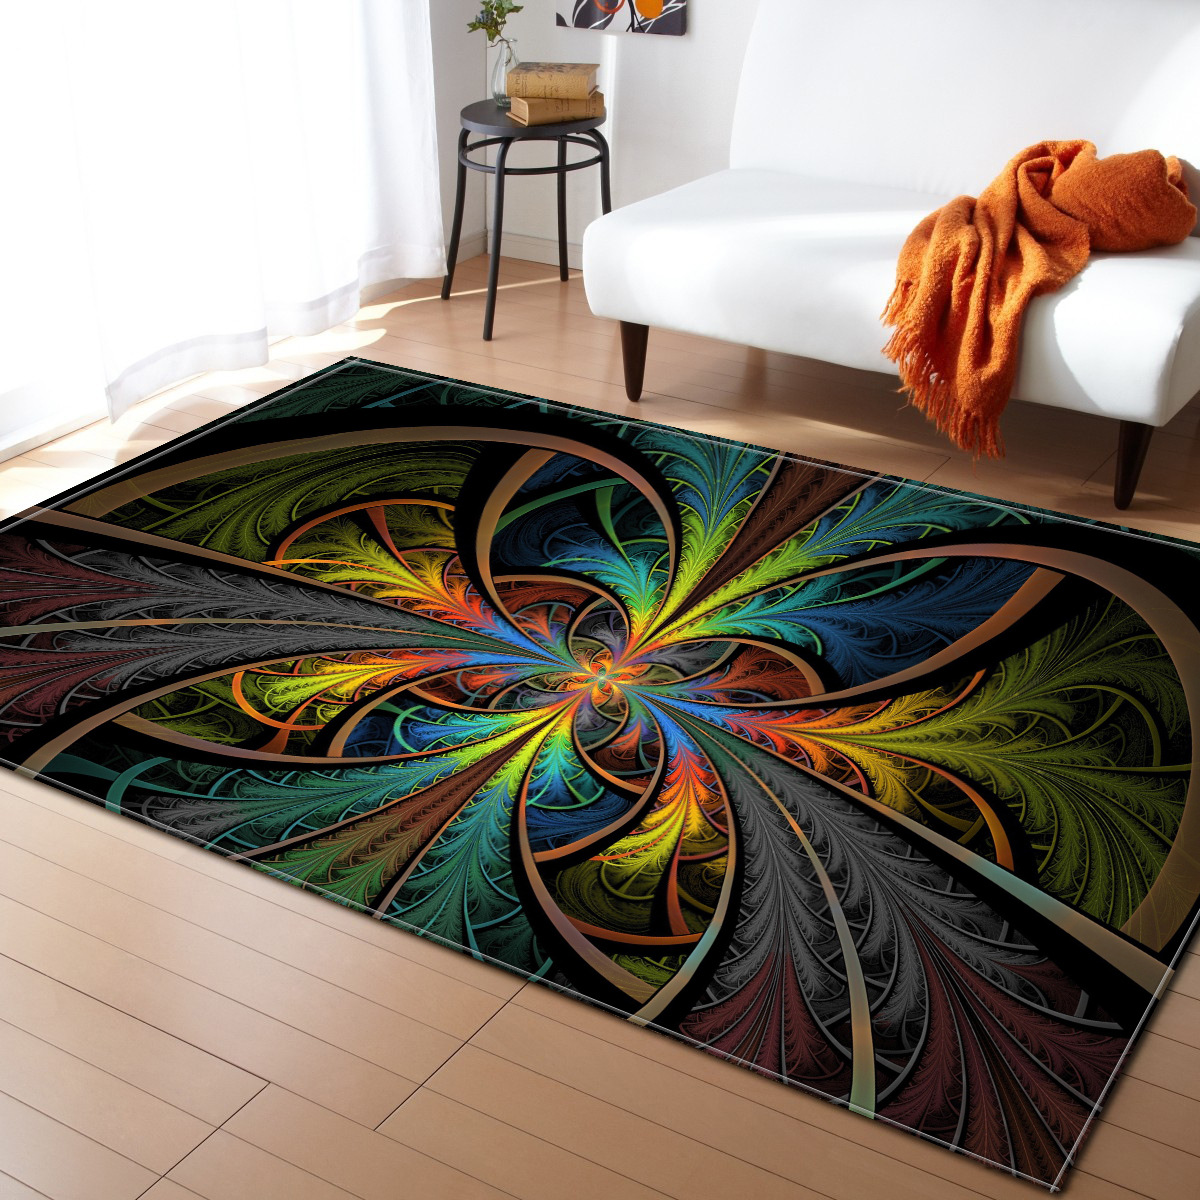 Coffee Table Antiskid Floor Mats Nordic Style Carpets for Living Room Home Area Rugs Modern Bedroom Decorate Rug Kitchen DoormatCoffee Table Antiskid Floor Mats Nordic Style Carpets for Living Room Home Area Rugs Modern Bedroom Decorate Rug Kitchen Doormat